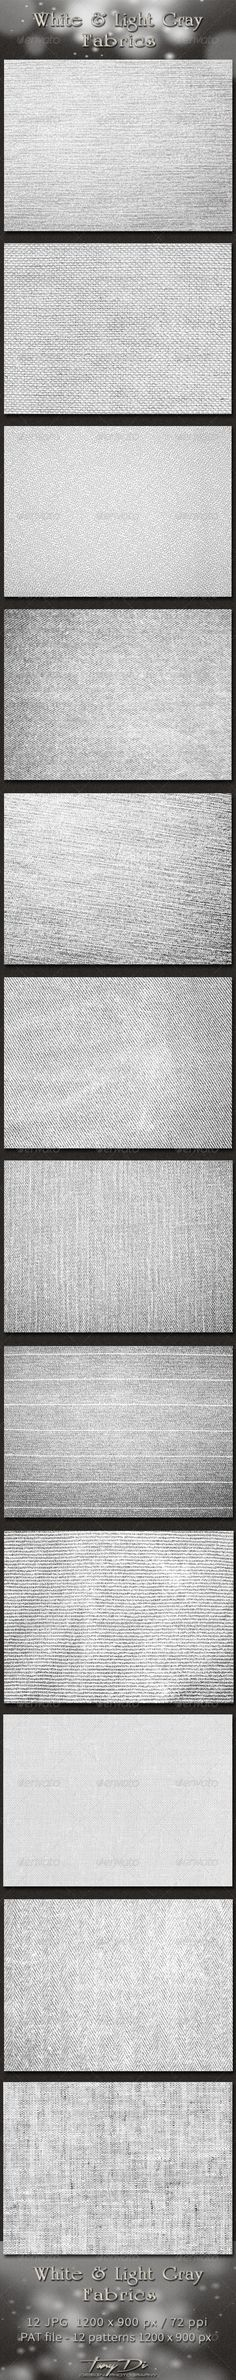 White and Light Gray Fabrics - GraphicRiver Item for Sale